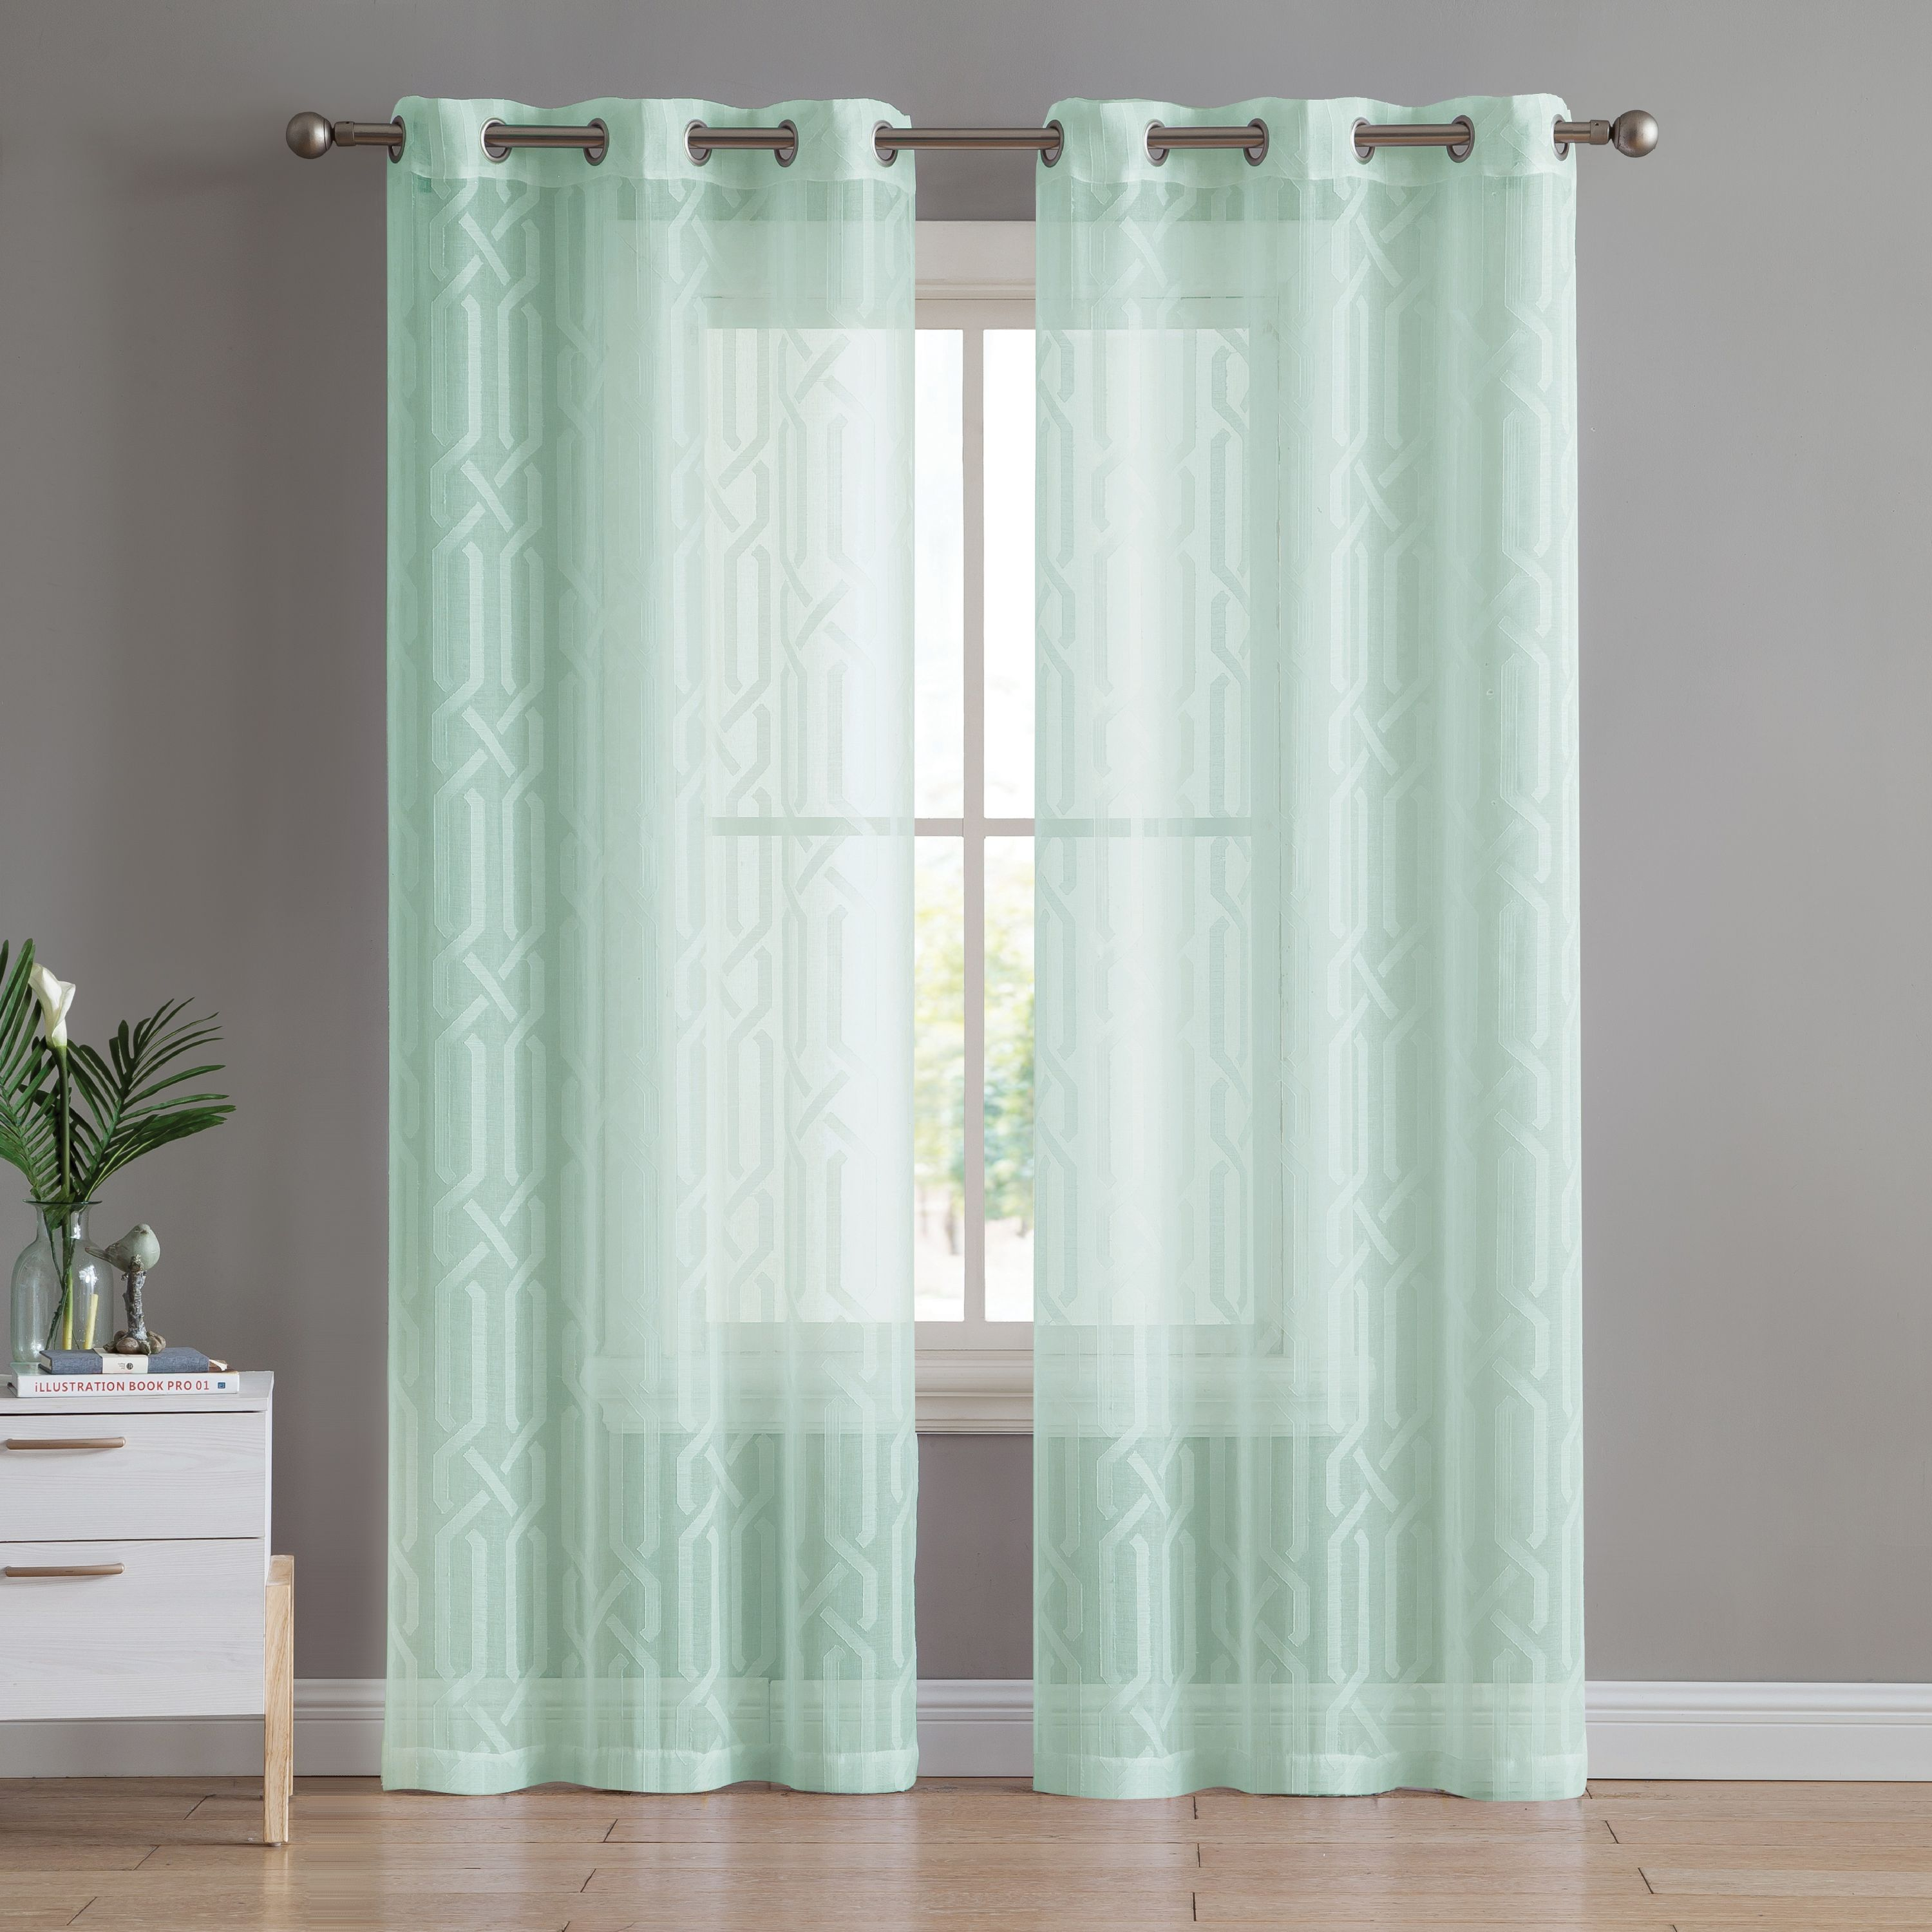 Vcny Home Irongate Trellis Sheer Grommet Curtain Panel 54